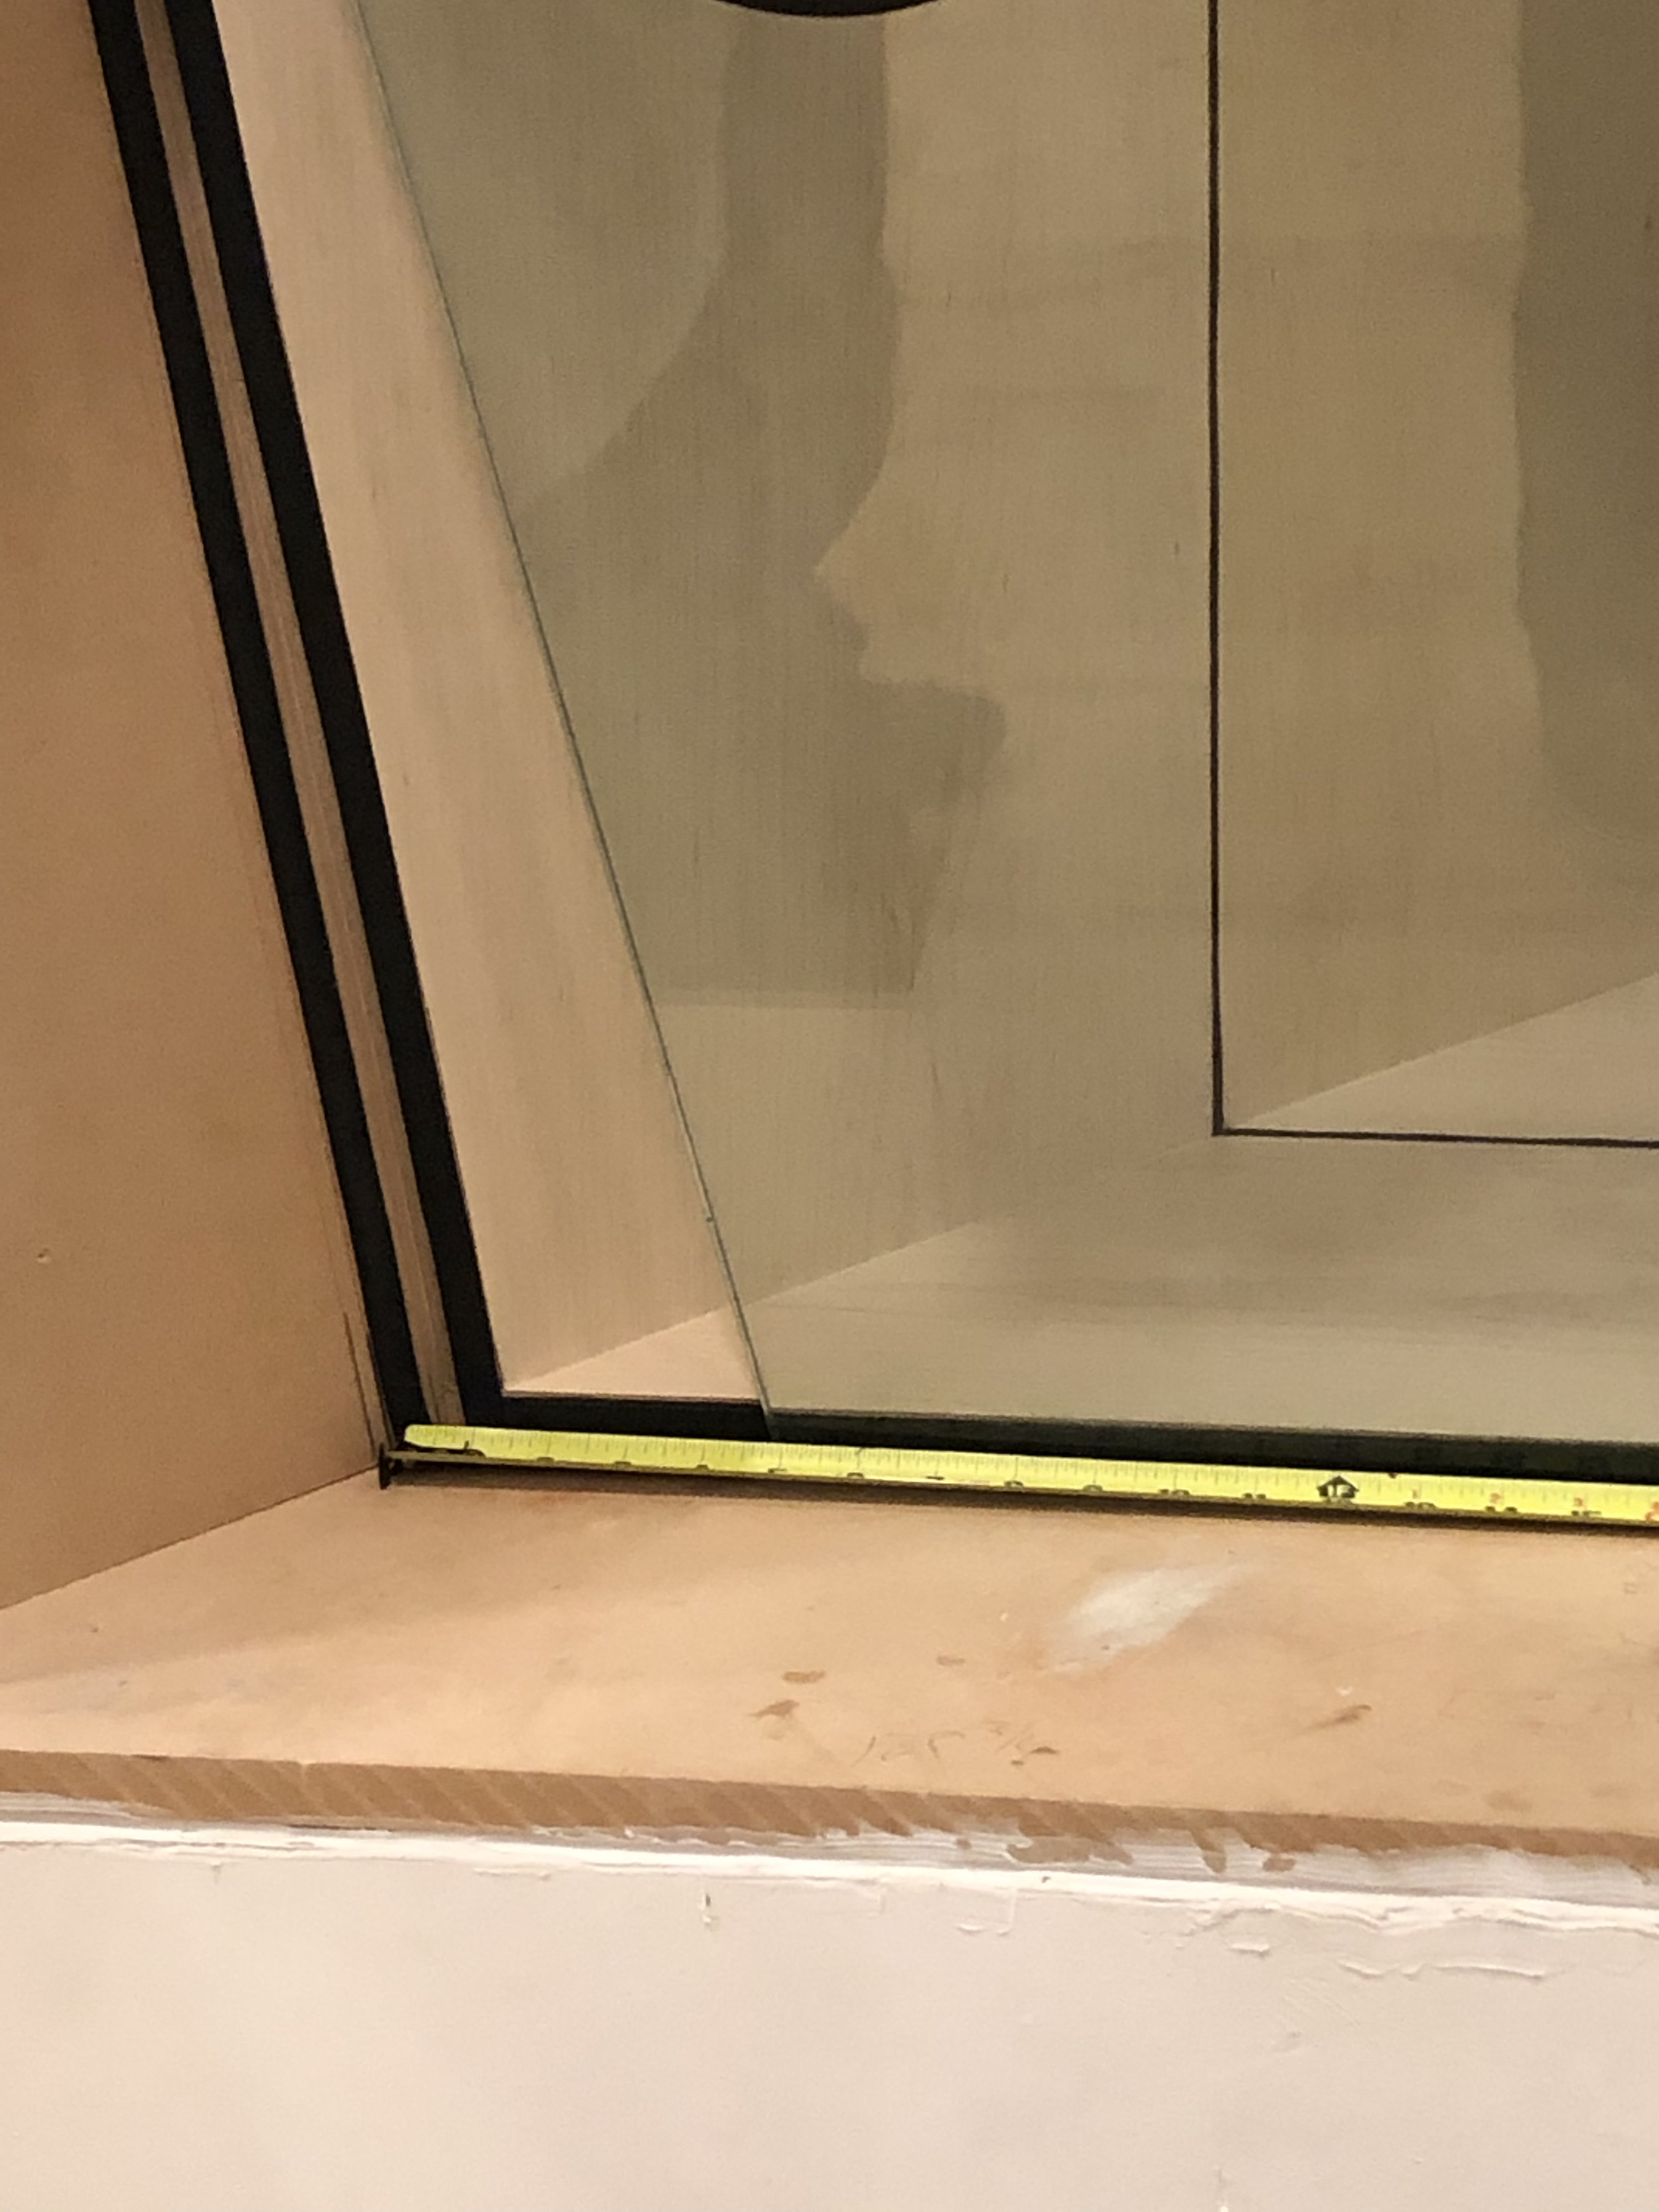 """…and then we heard the installer on one end say """"you need to come my way a lot"""" and then the installer on the other side said """"no, it needs to come my way a lot."""" As you can see, somewhere along the way one of the measurements was wrong and the glass was cut incorrectly. It fit great on top but was ten inches short on the bottom. So our first session in the studios didn't have total isolation, or a trimmed out window, but it was a lot easier to leave that huge piece of glass in that spot than take it out and find somewhere to put it while we waited for a replacement."""